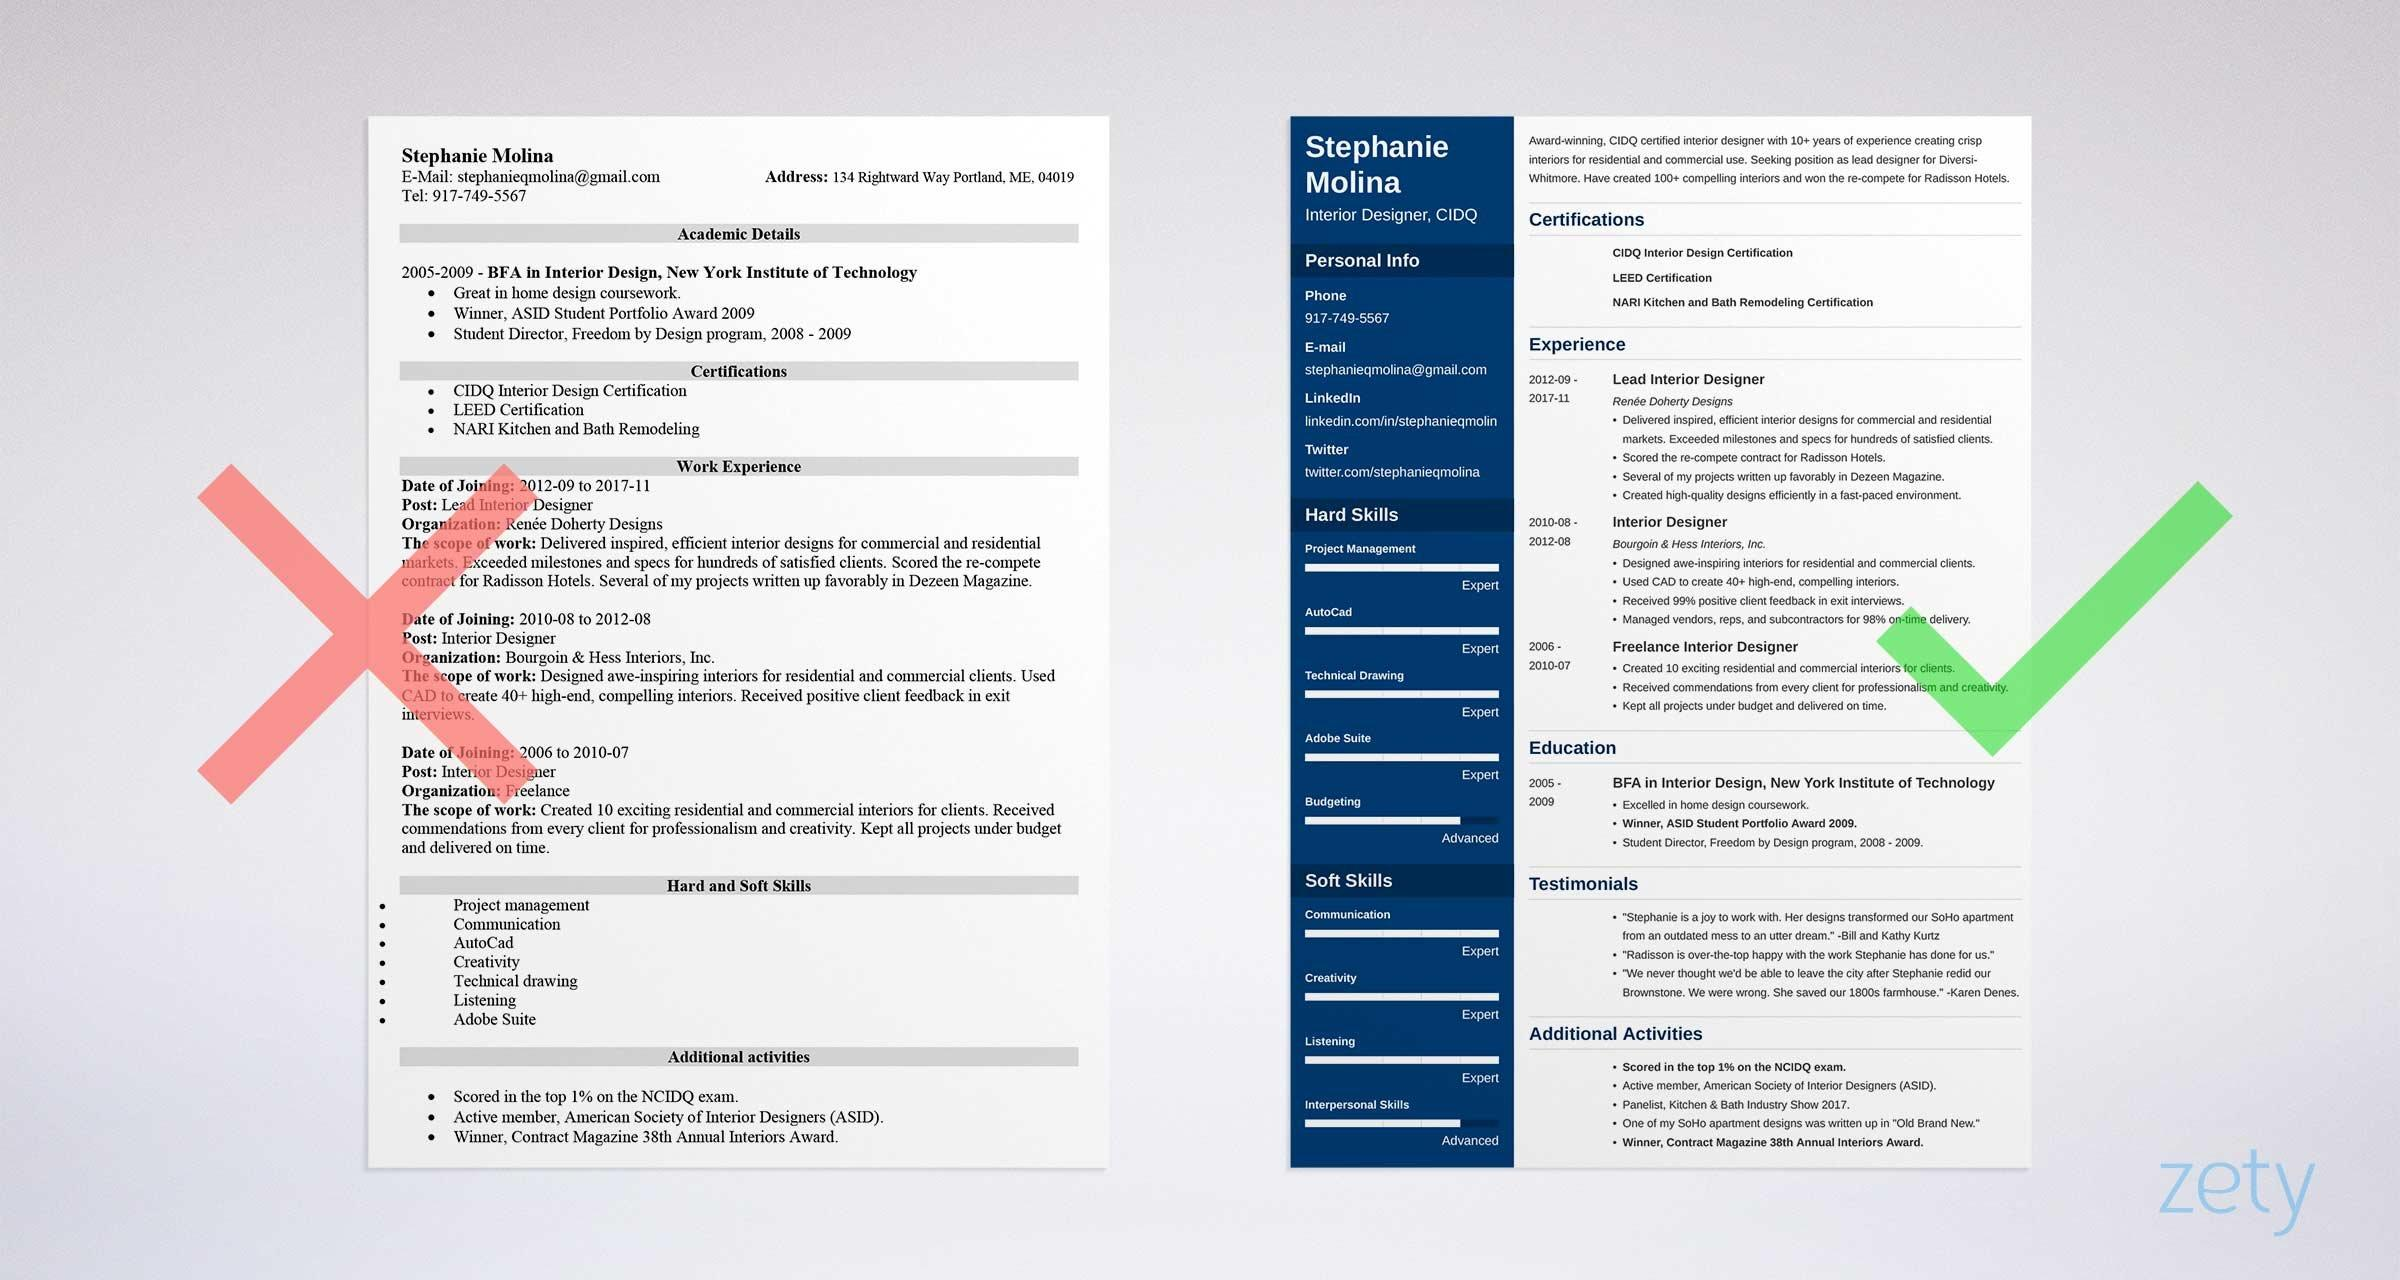 94 Beautiful The Best Free Resume Templates with Images